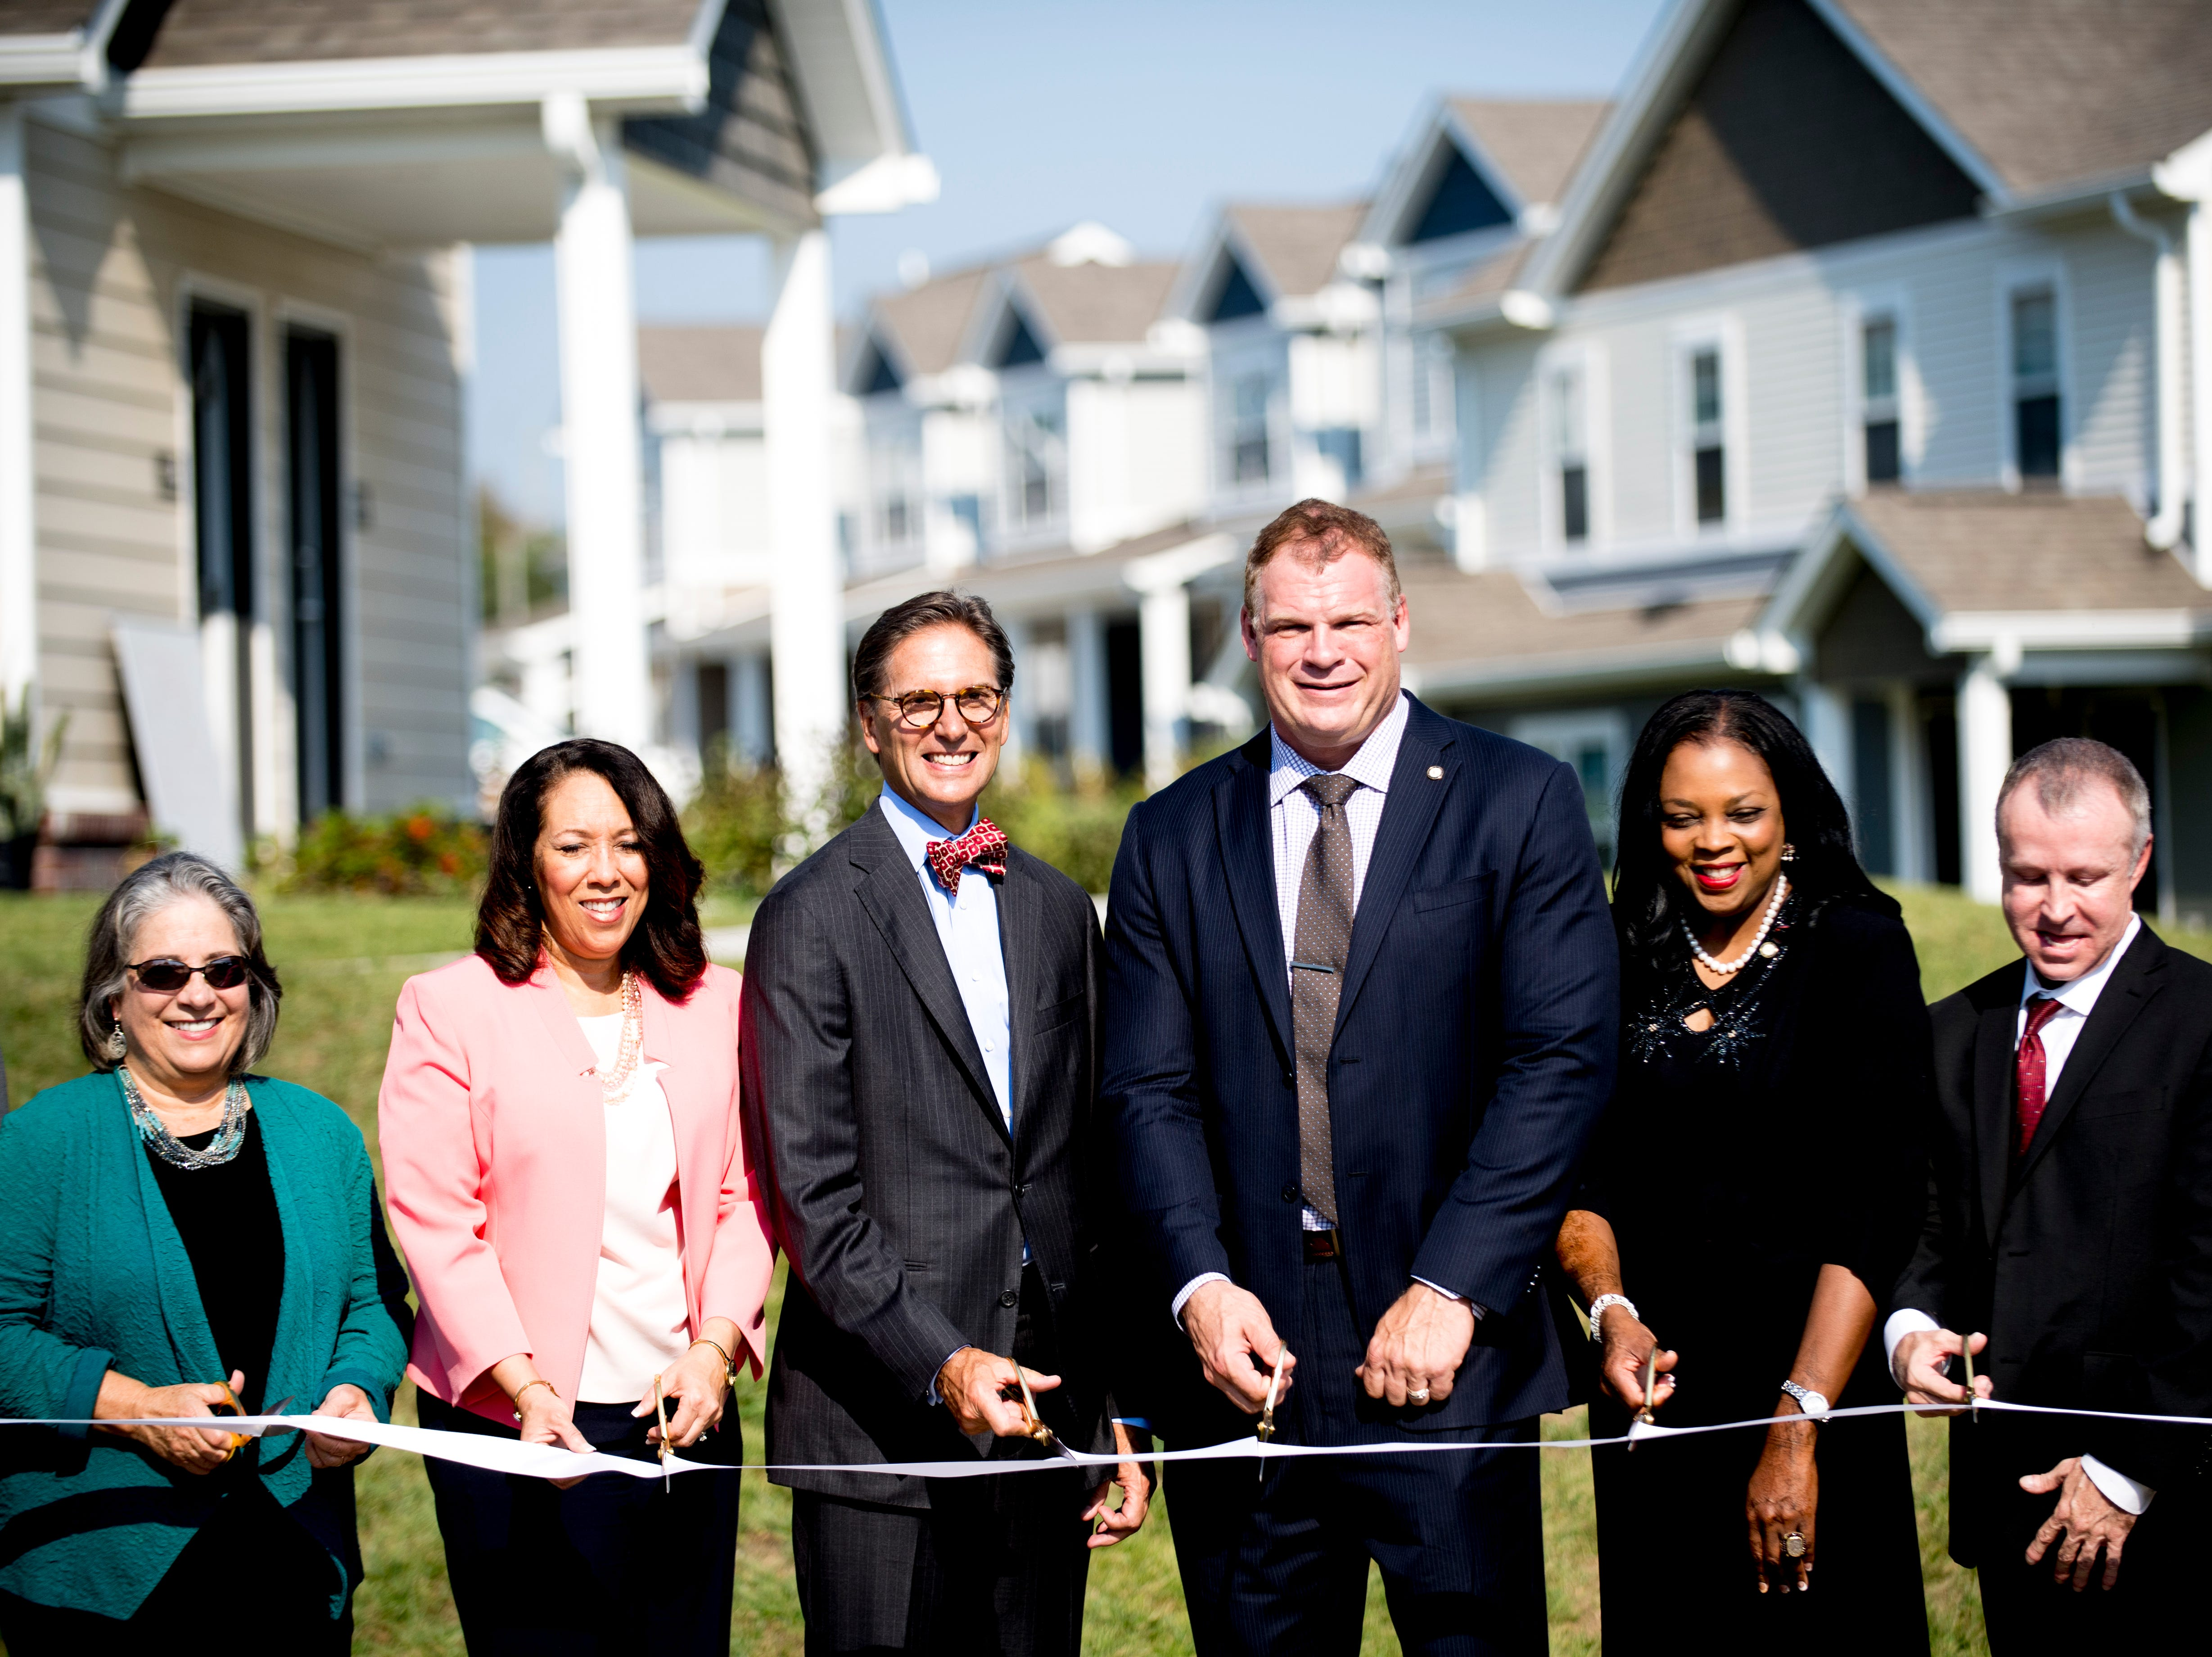 Officials pose for a photograph during the Five Points Phase 2 ribbon cutting ceremony in Knoxville, Tennessee on Wednesday, September 19, 2018. The 10-building, 84-unit affordable housing complex has been part of Mayor Rogero's focus on affordable housing.